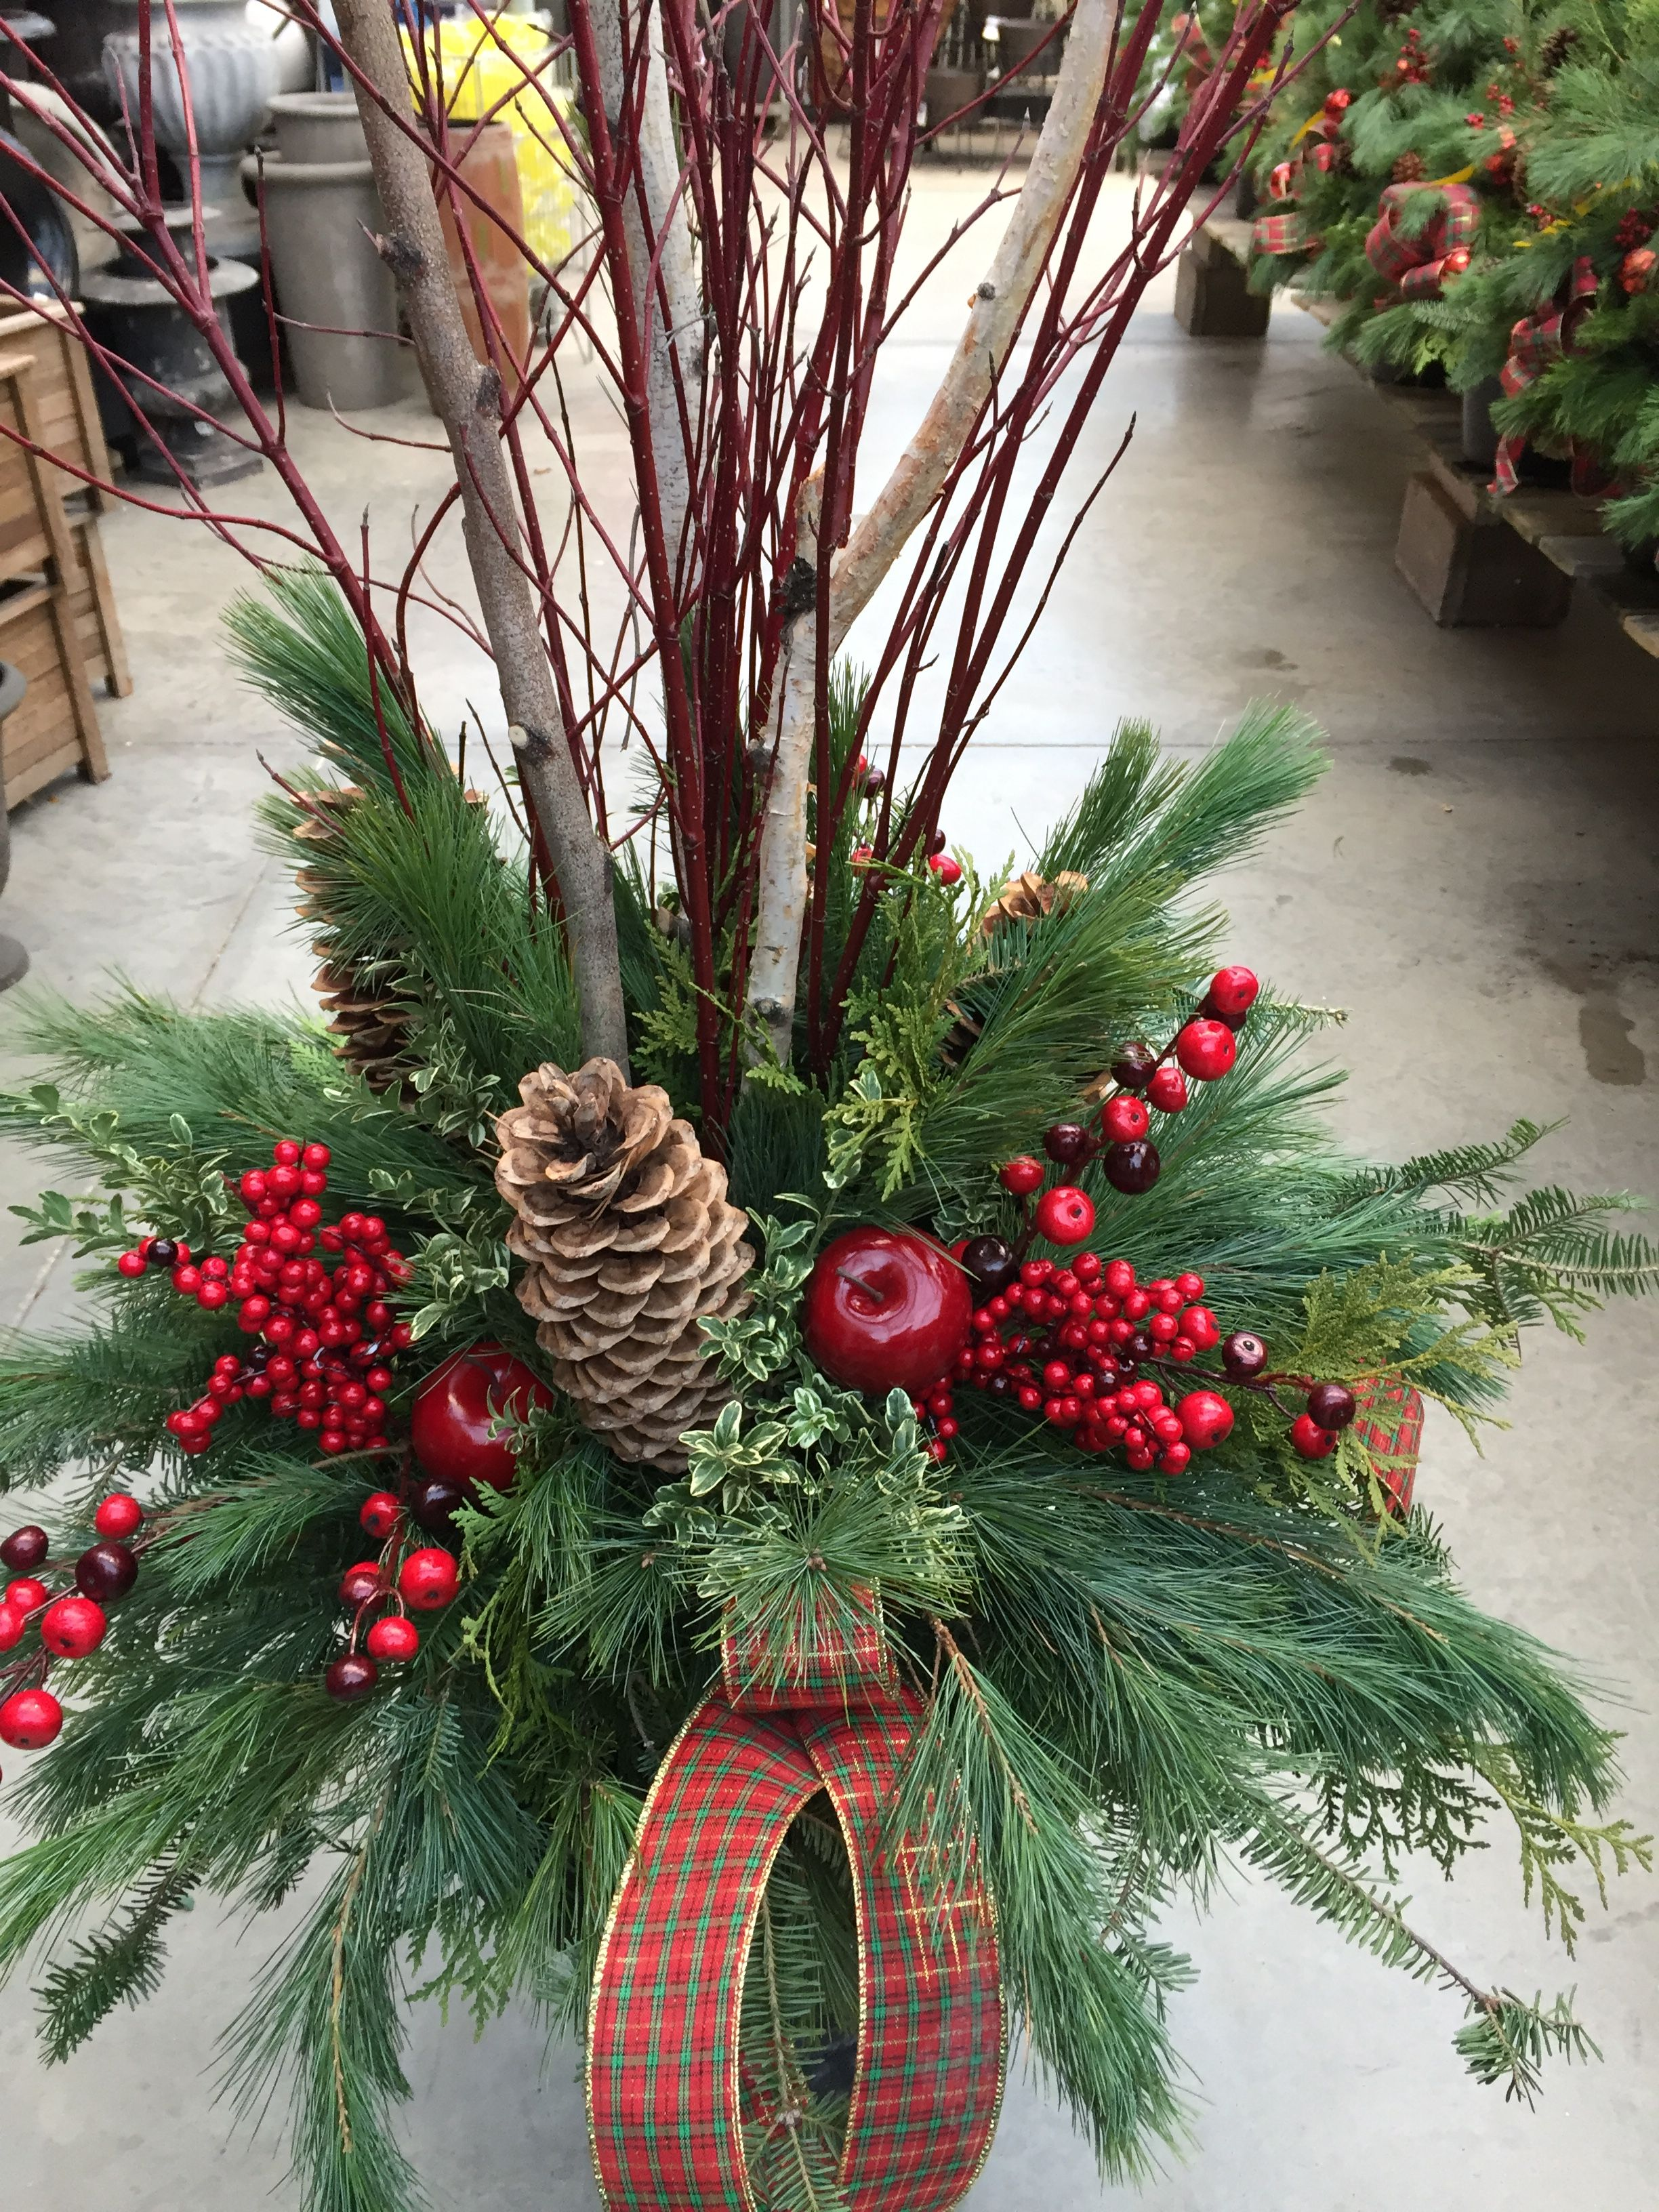 Find This Pin And More On Christmas Decorations And Outdoor